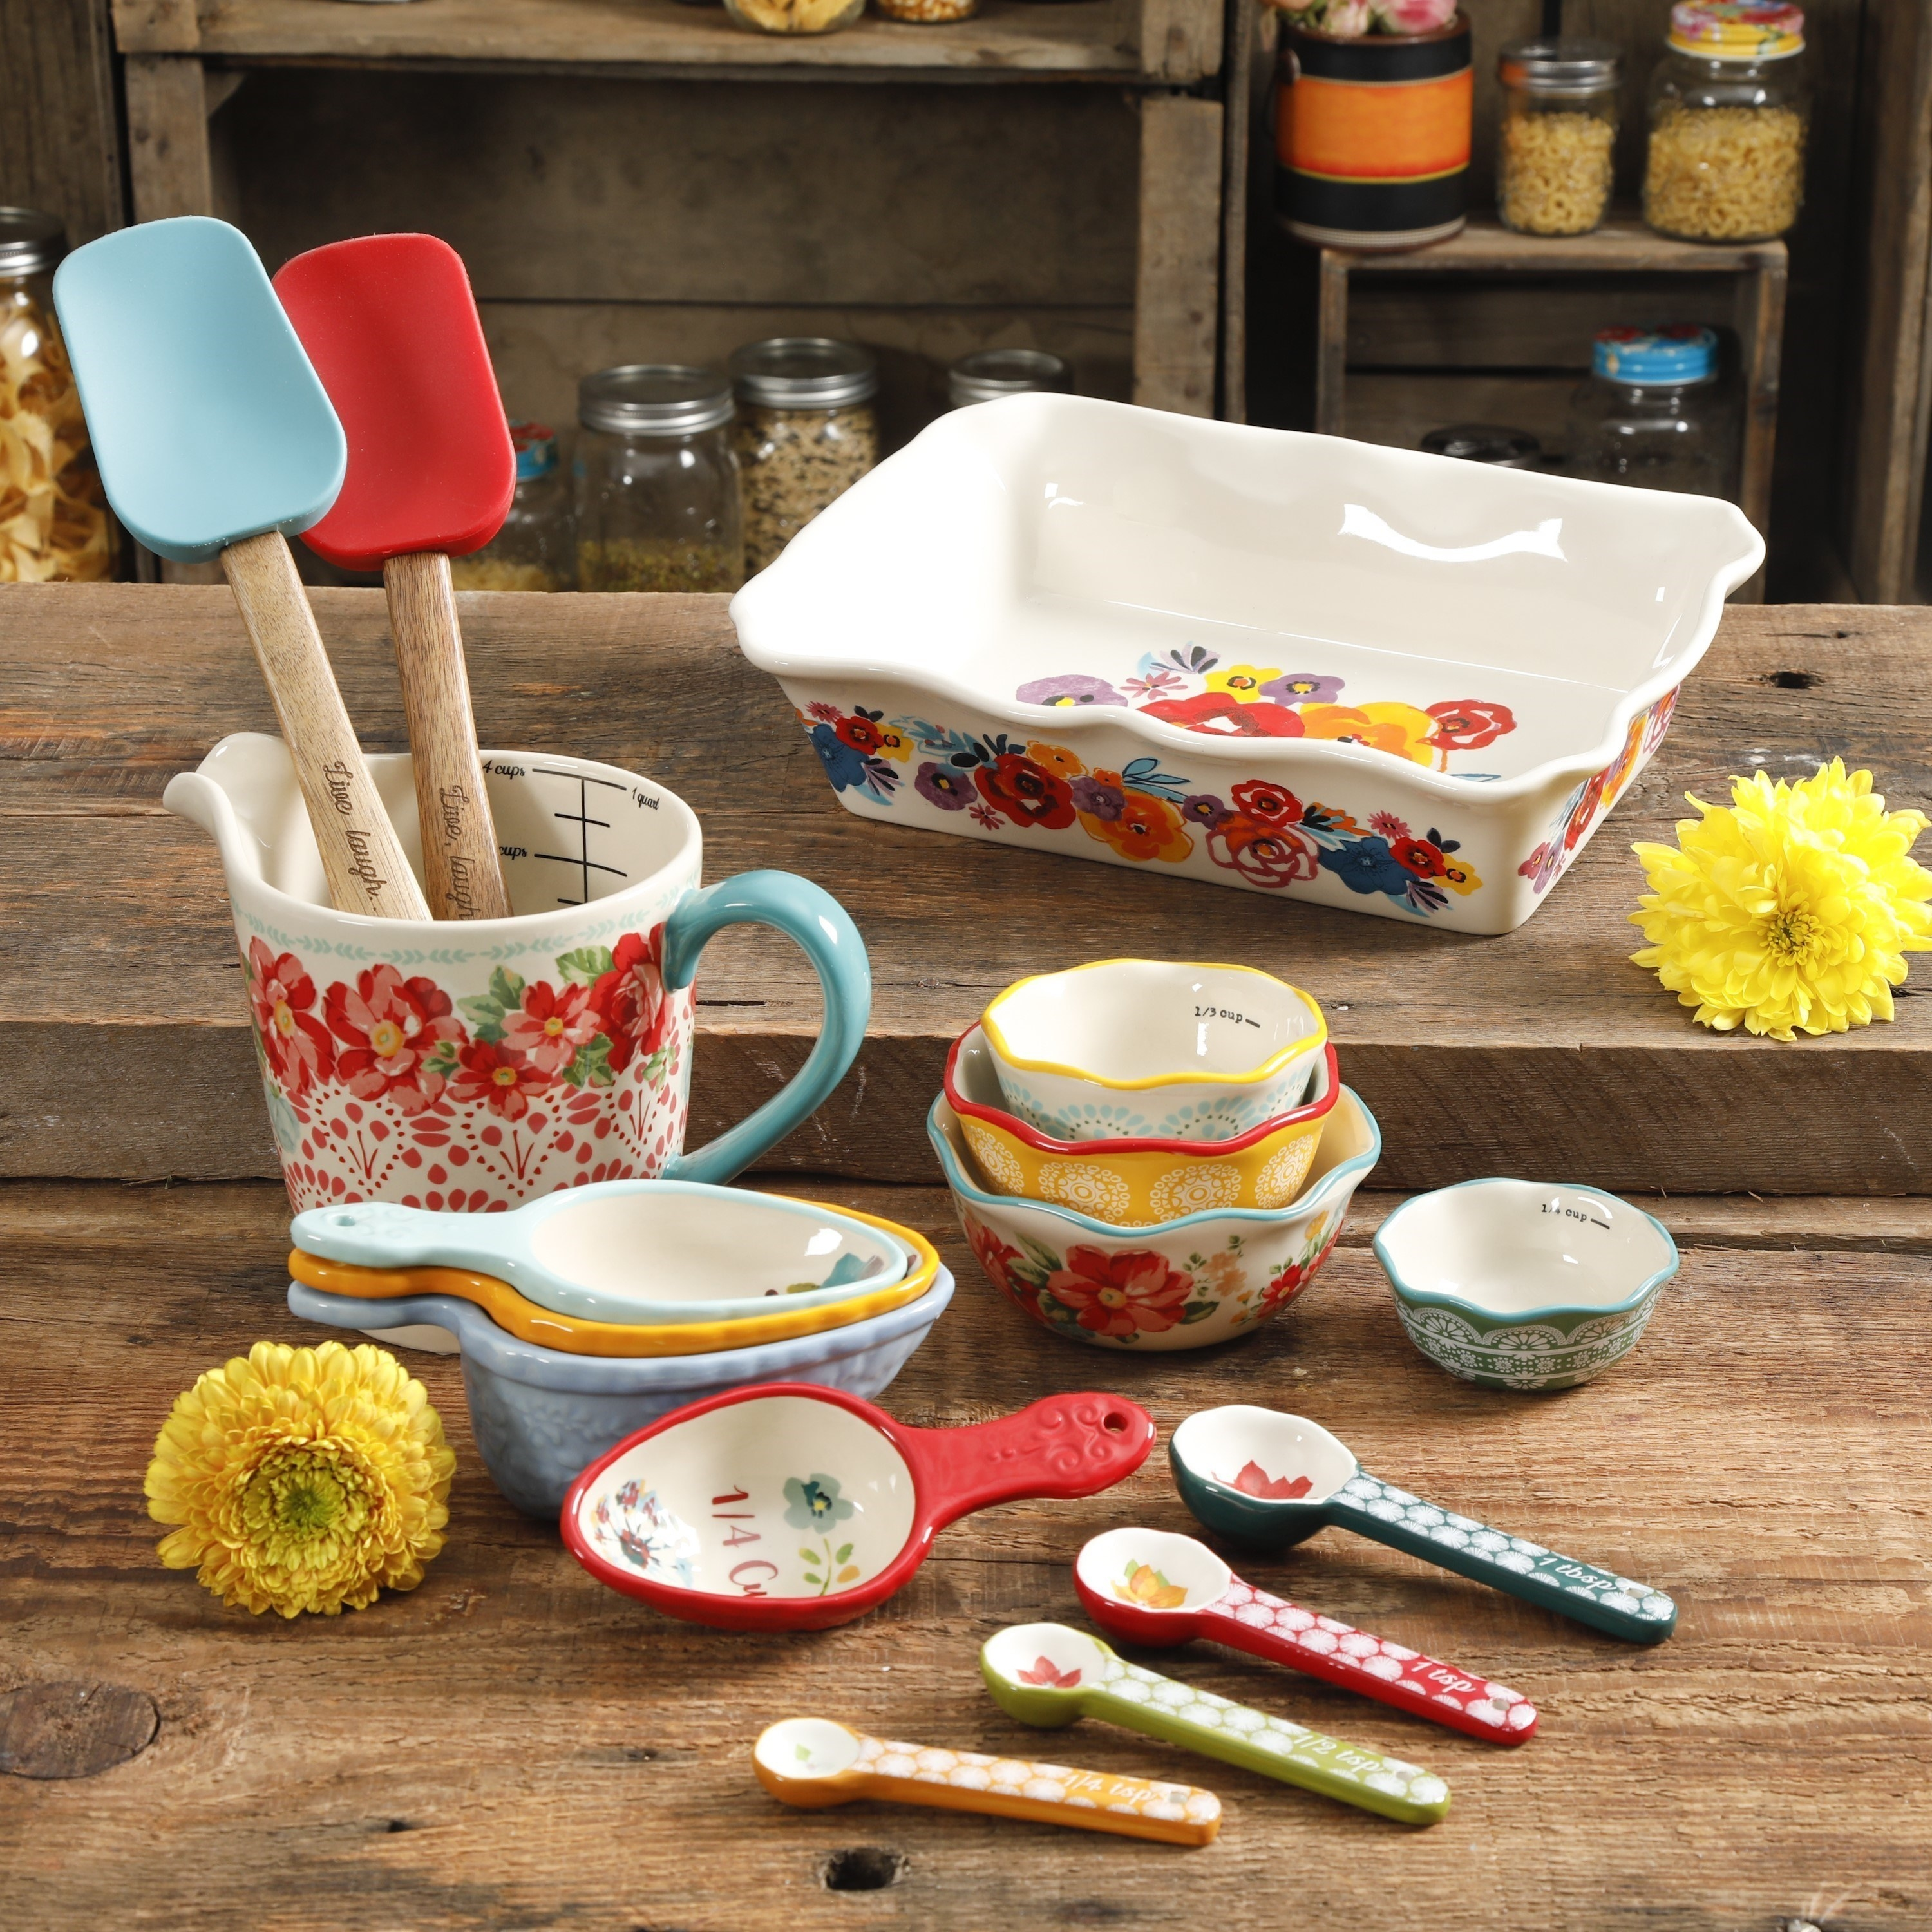 the floral baking set displayed in a kitchen with two yellow flowers